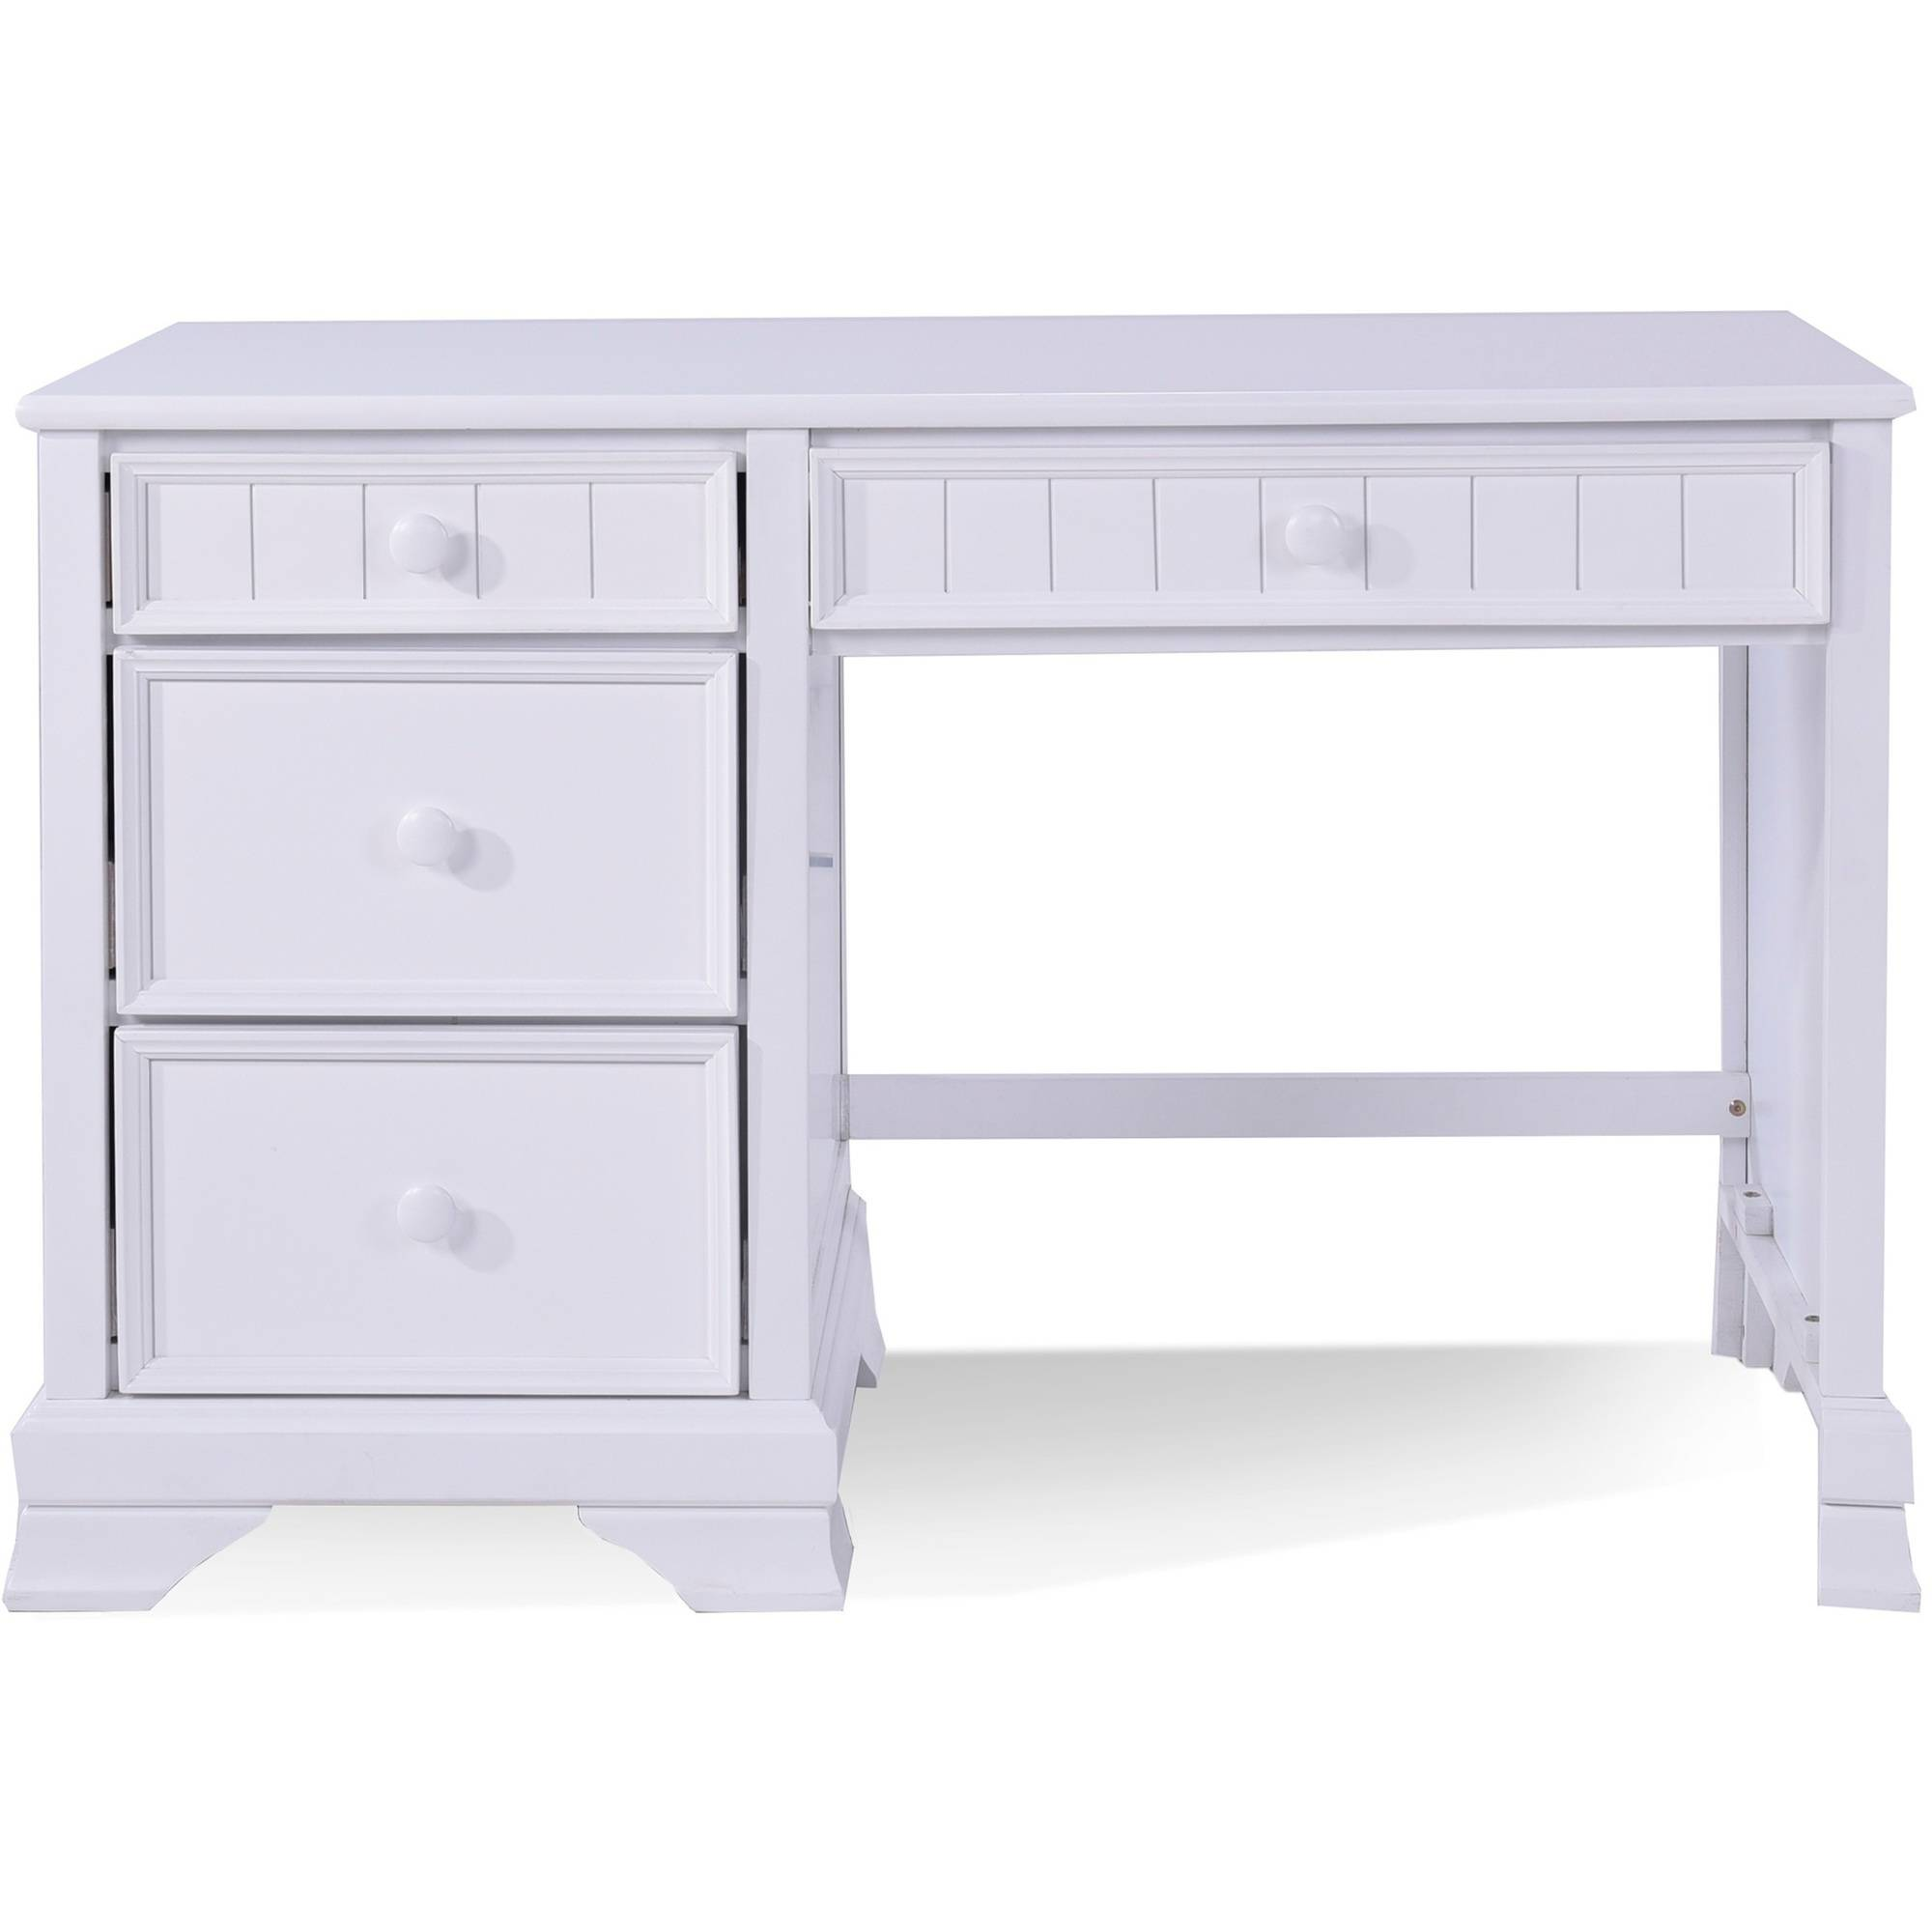 Better Homes And Gardens Kids Sebring Desk, White